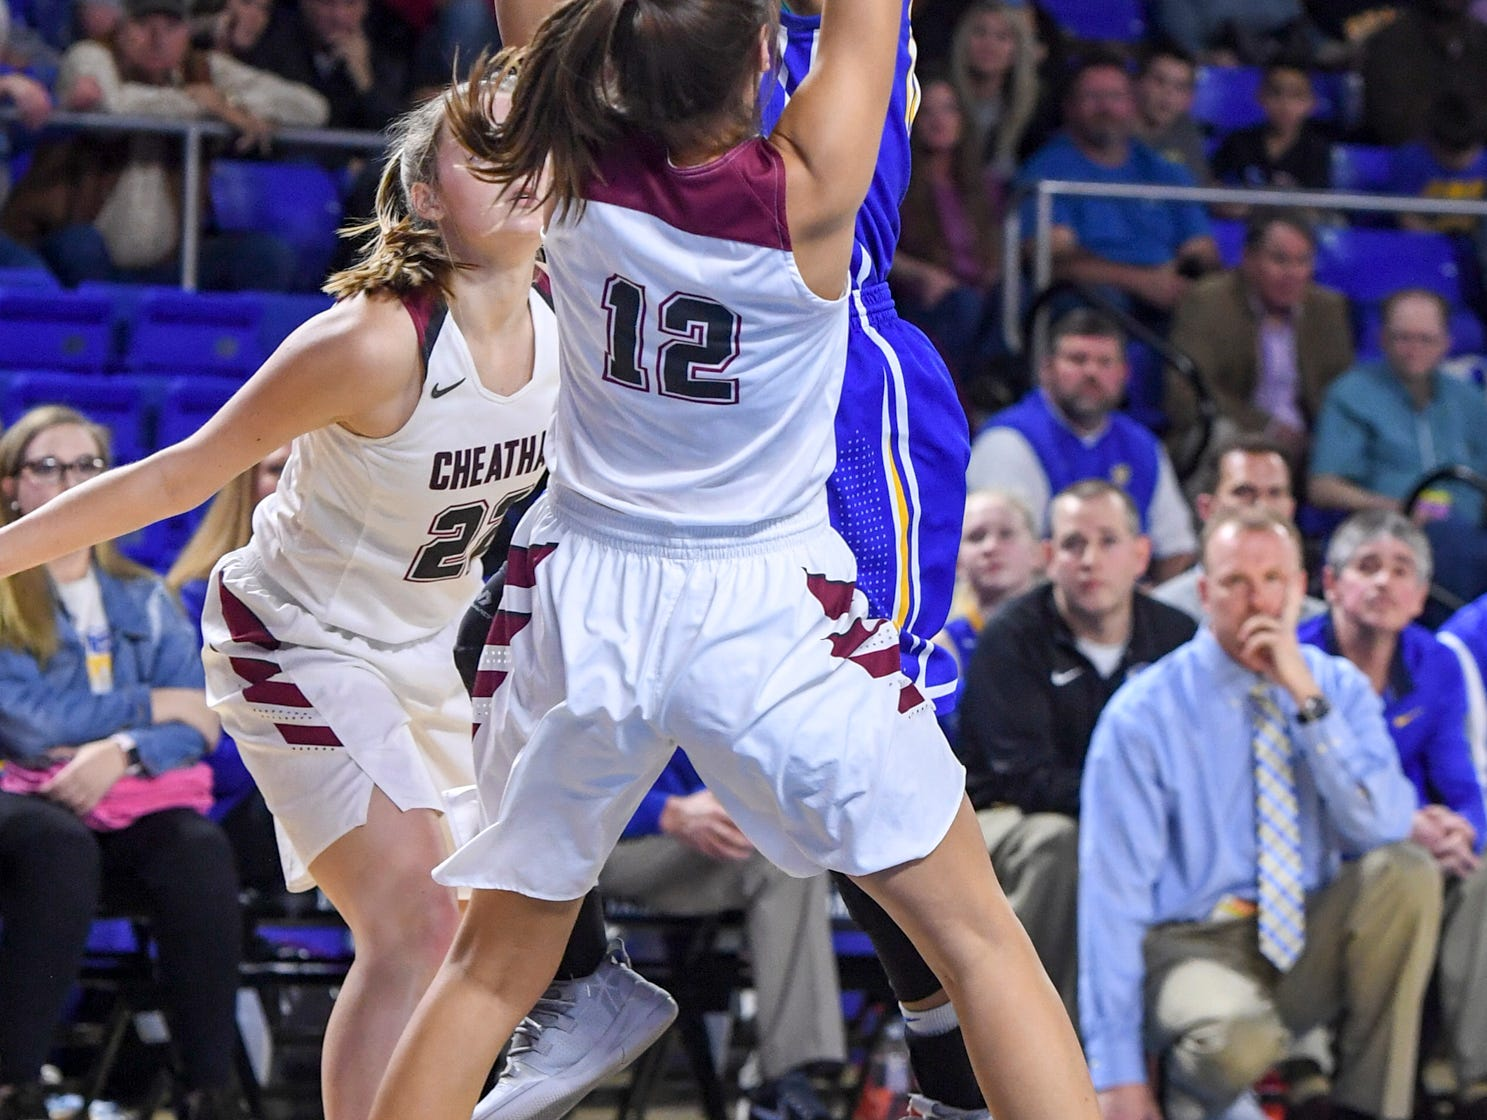 Westview's Zanasha Gadlen (10) draws a blocking foul on Cheatham County's Jorden Bumpus (12) during their Class AA championship game, Saturday, March 9, 2019, in Murfreesboro. Westview fell to Cheatham County, 43-40.